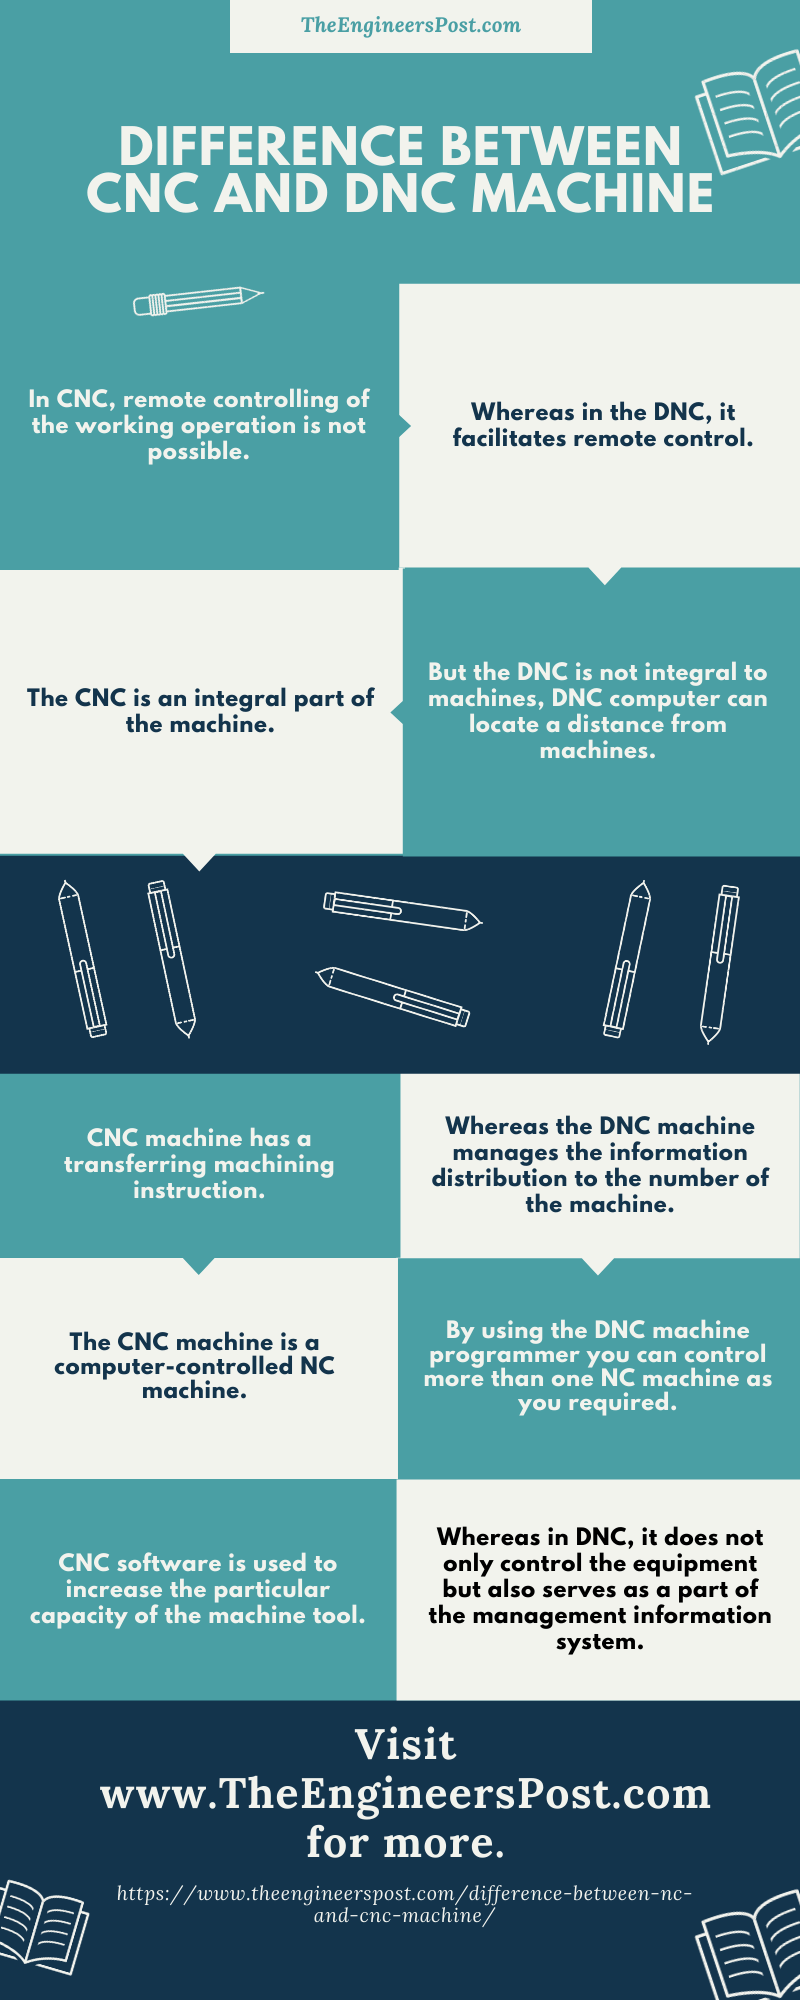 Difference Between CNC and DNC machine